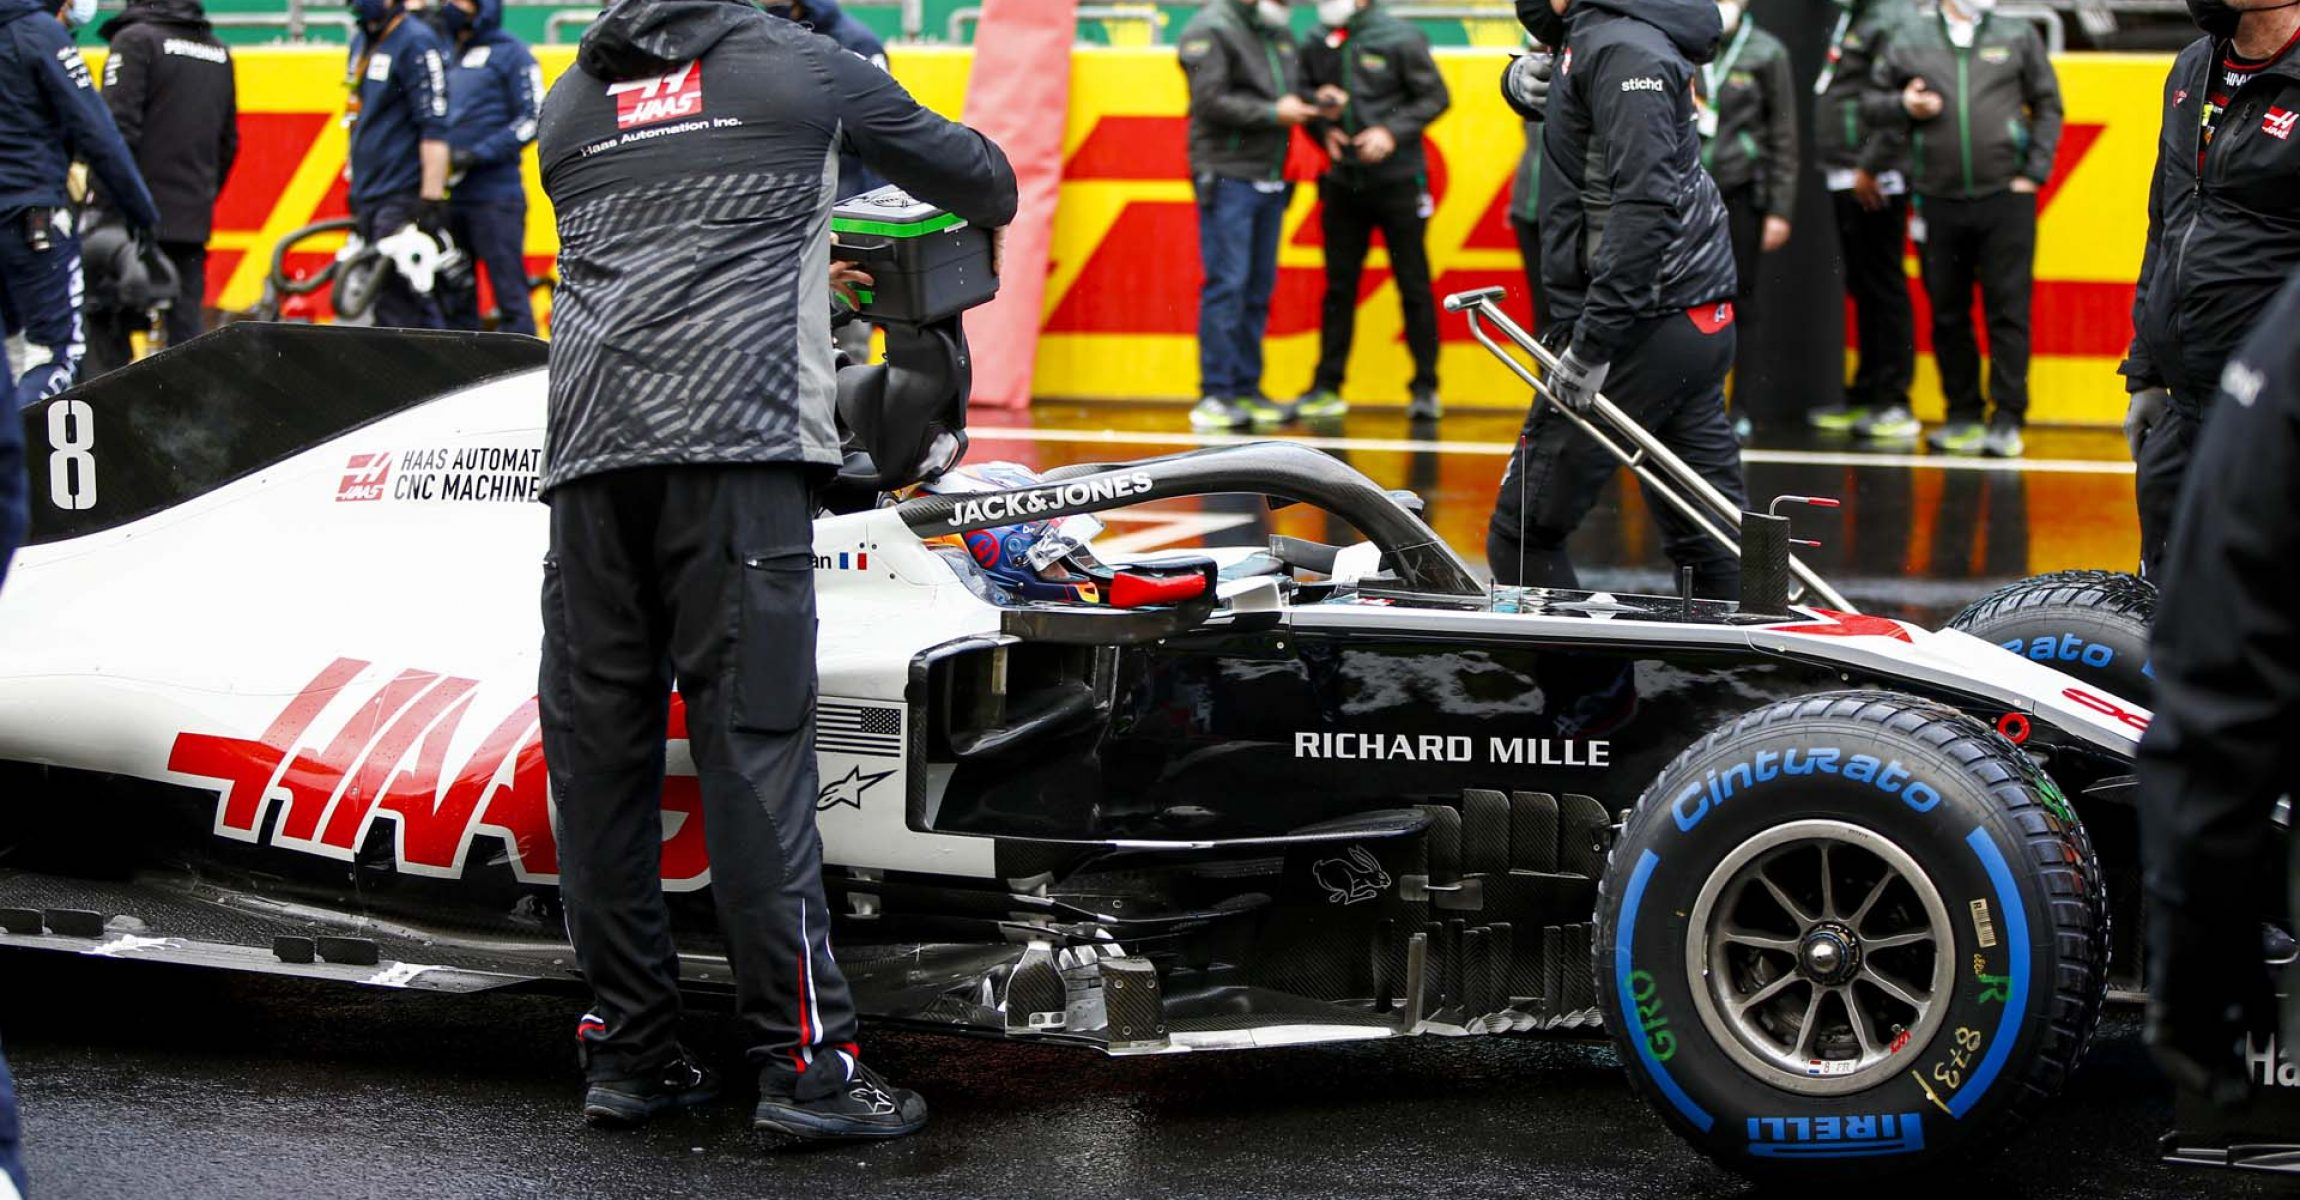 ISTANBUL PARK, TURKEY - NOVEMBER 15: Romain Grosjean, Haas VF-20 on the grid during the Turkish GP at Istanbul Park on Sunday November 15, 2020, Turkey. (Photo by Andy Hone / LAT Images)